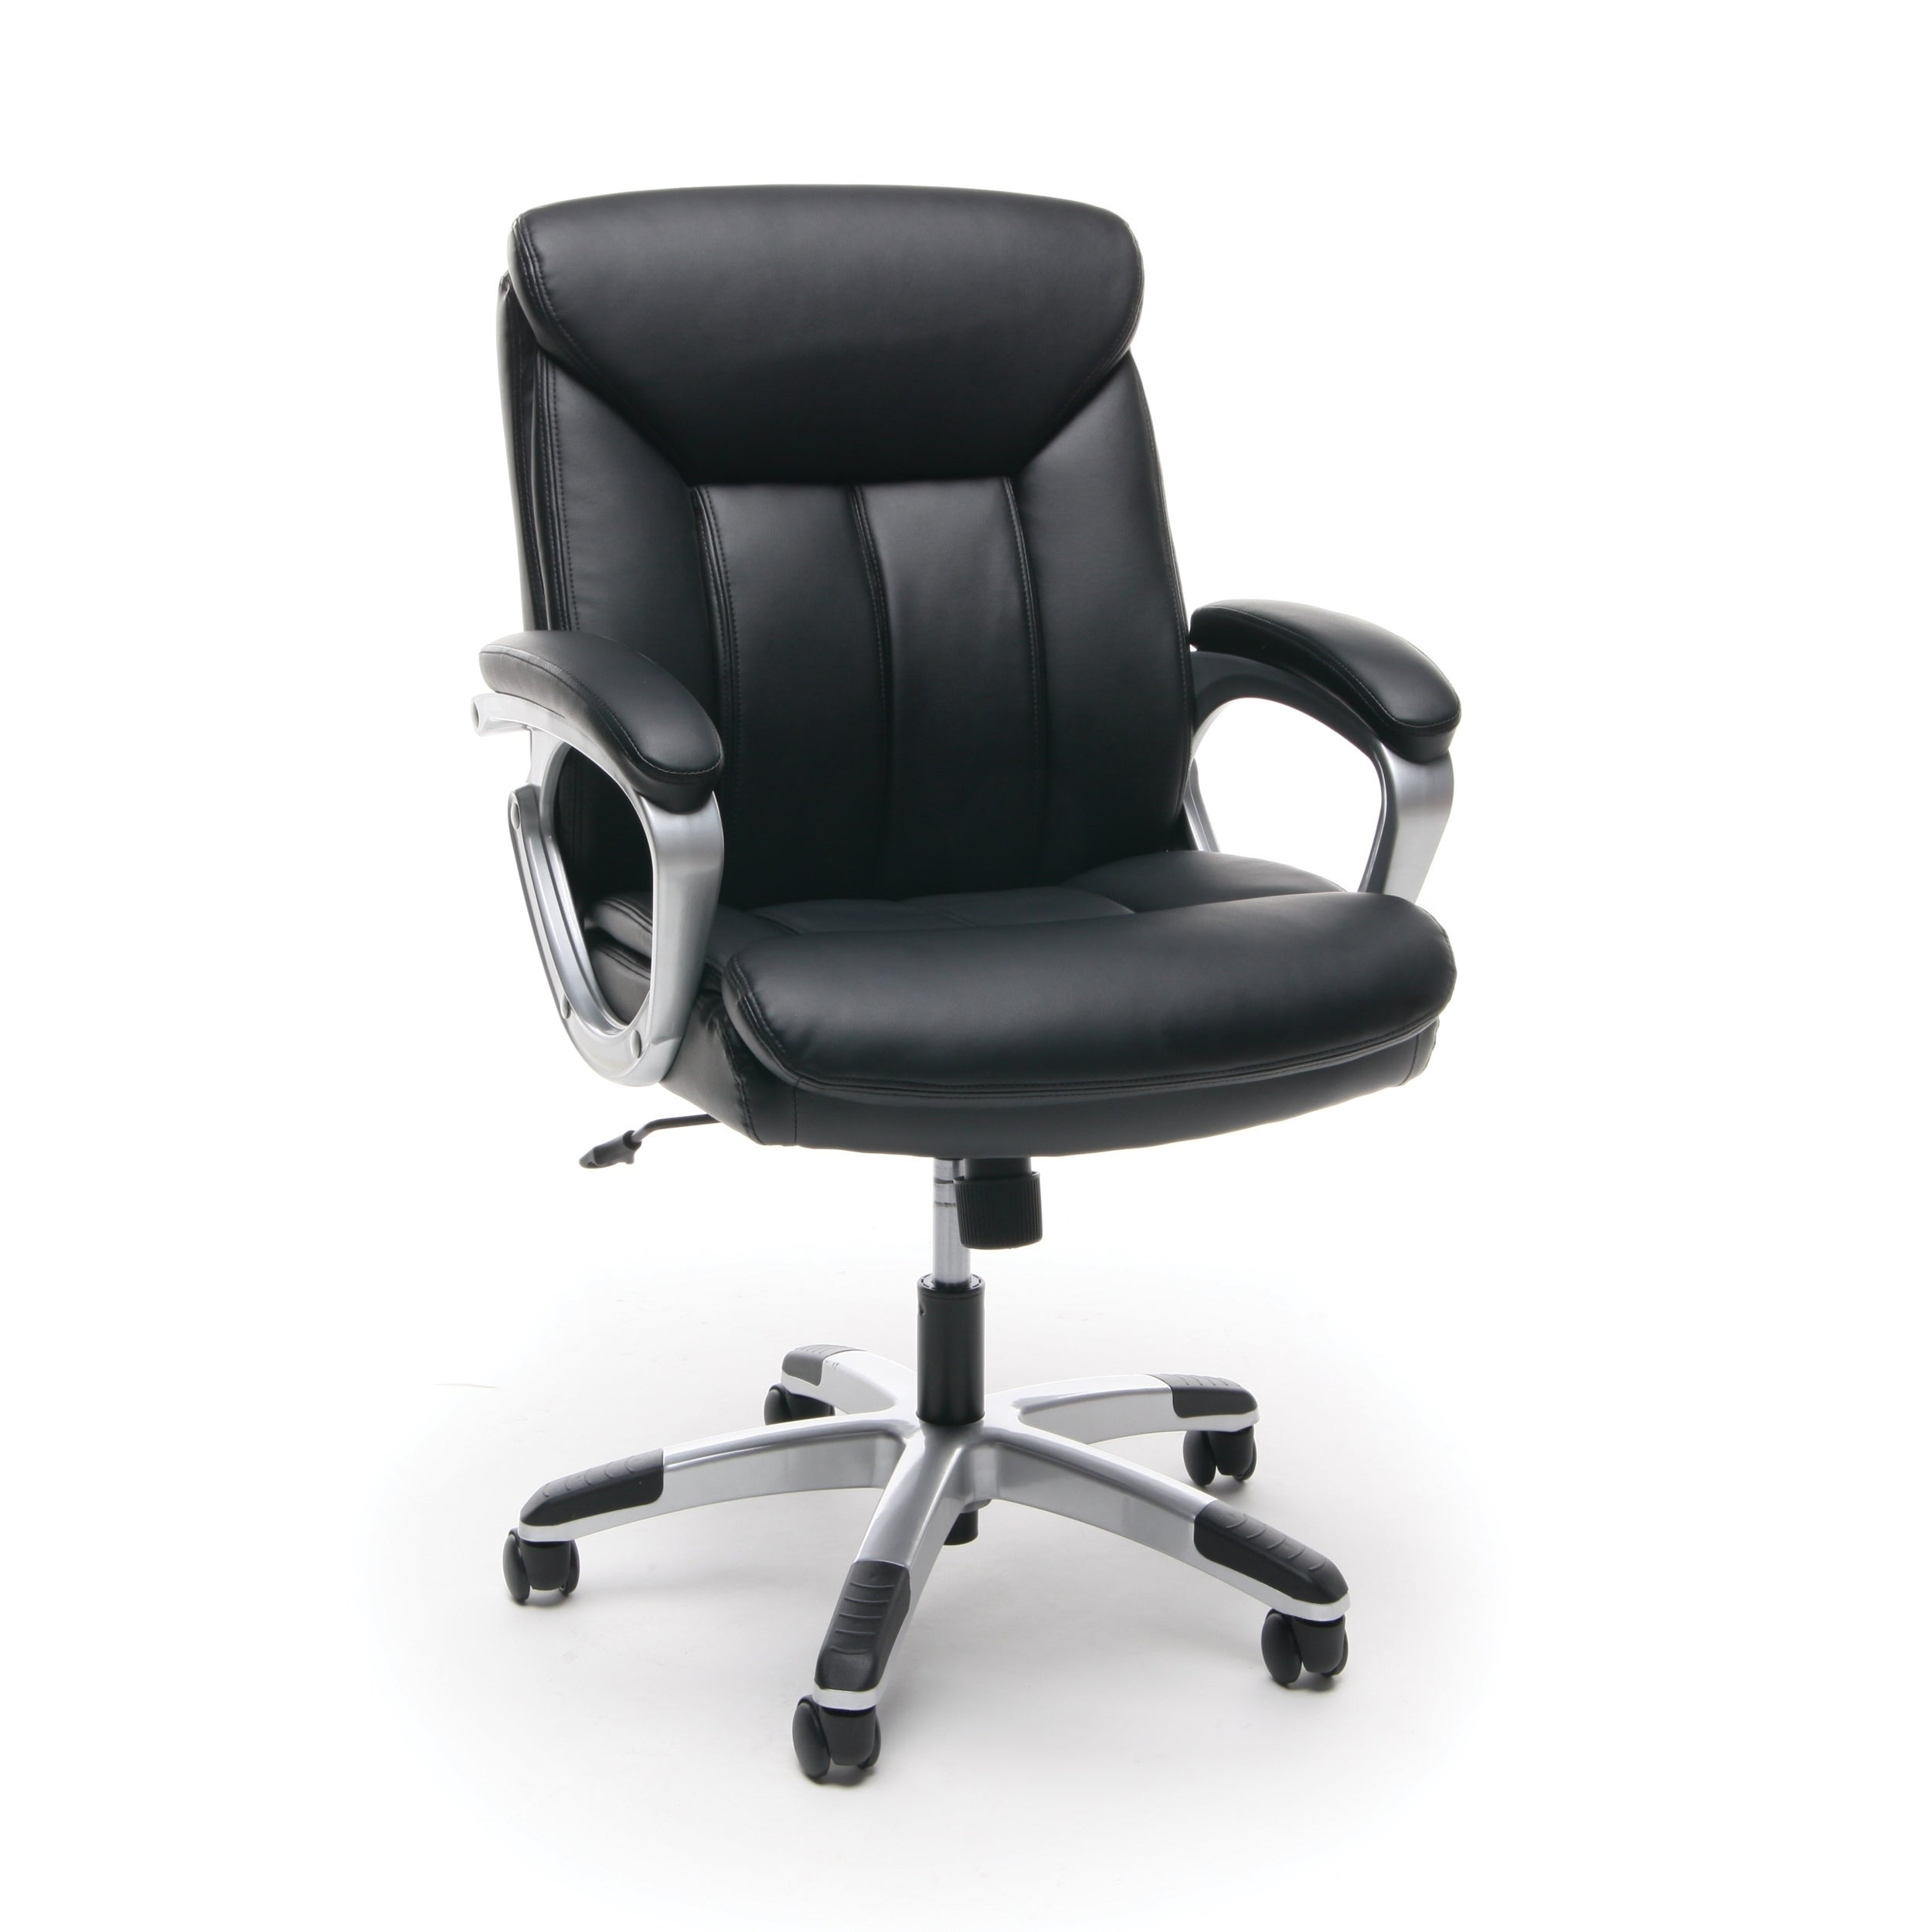 office leather chair. OFM Essentials Black Leather Office Chair With Lumbar Support Office Leather Chair V